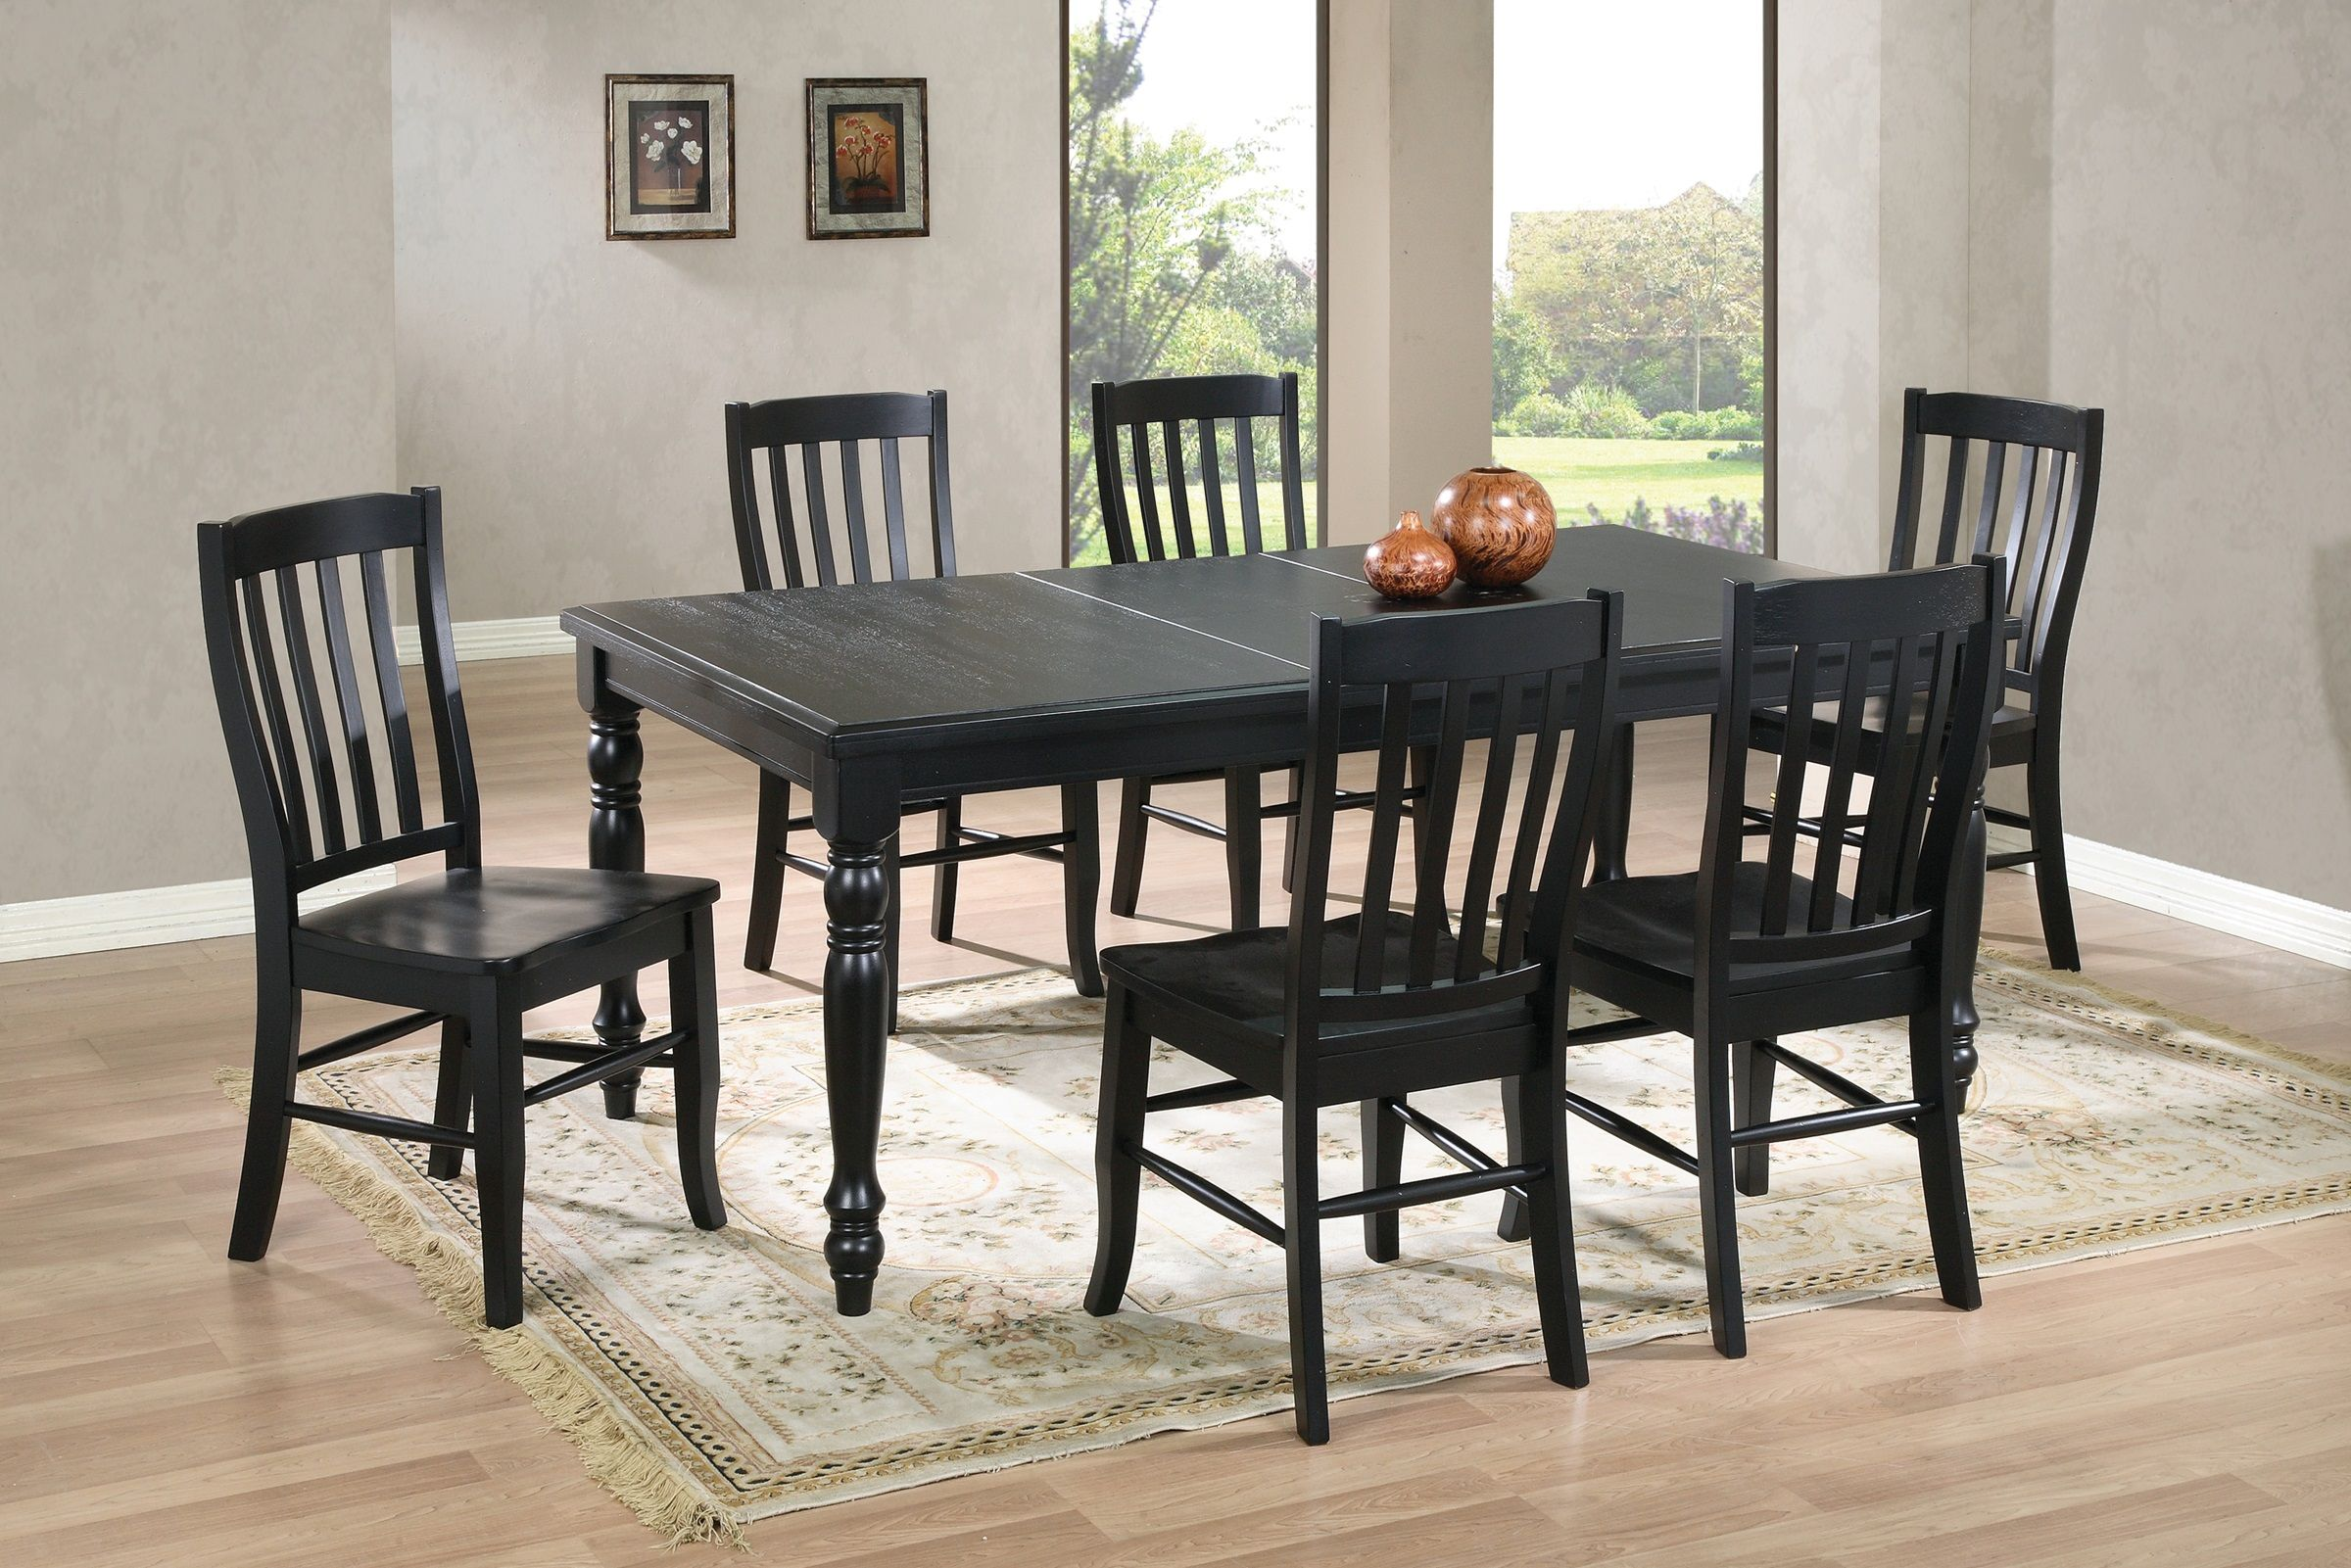 Quail Run Leg Table Large Dq14278 Dining Tables From Winners